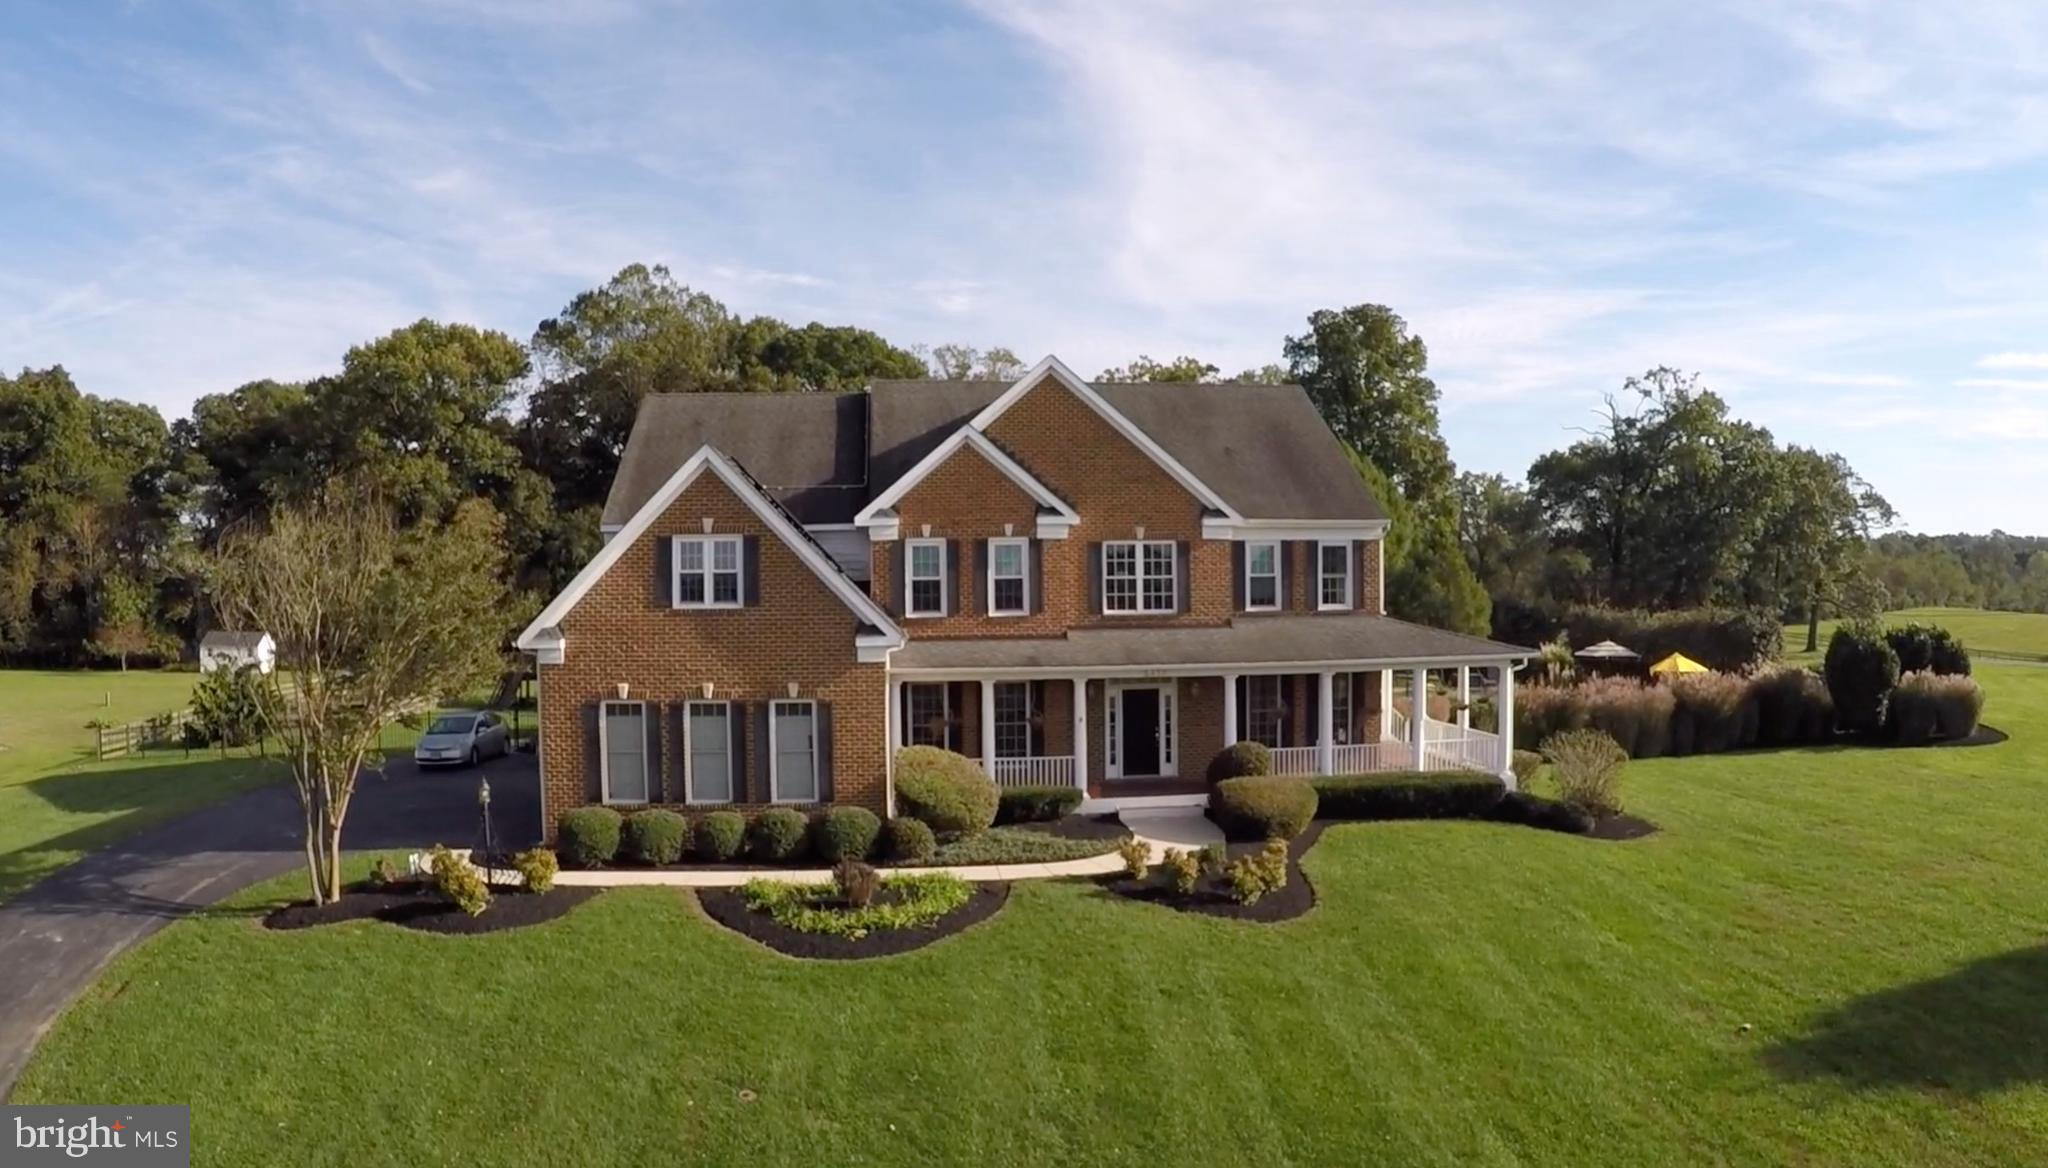 2417 SAPLING RIDGE LANE, BROOKEVILLE, MD 20833